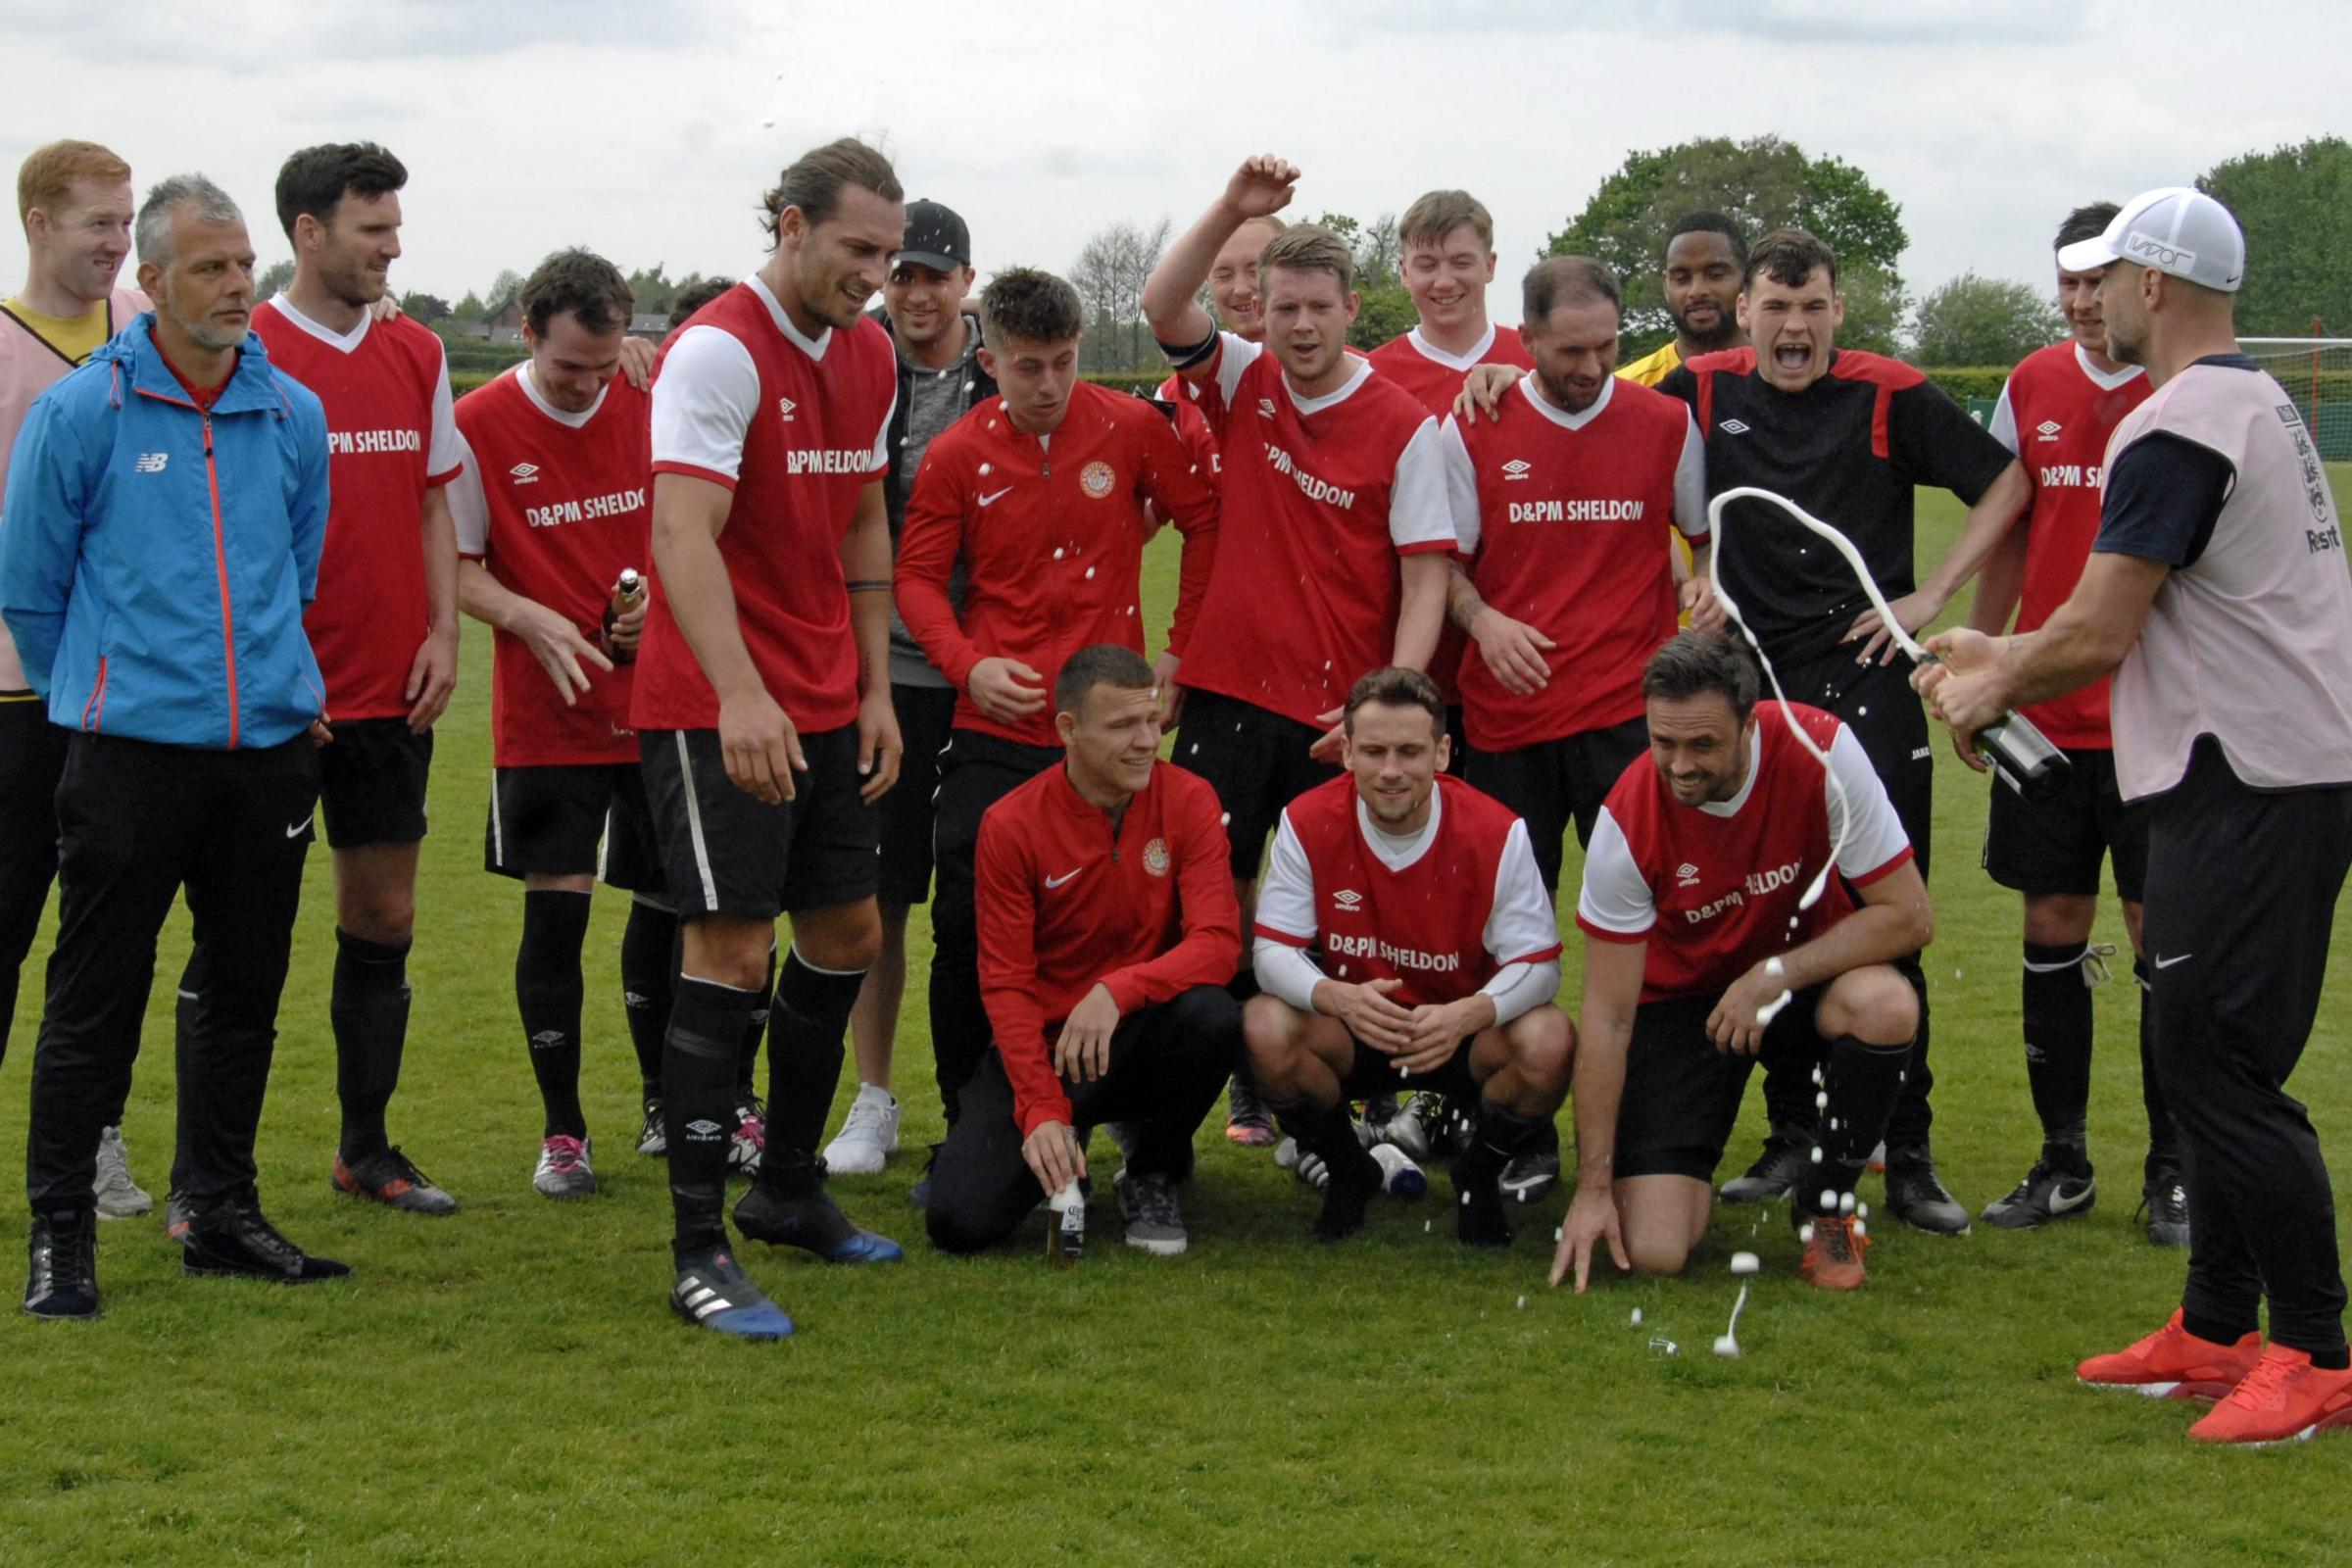 Knutsford FC celebrate clinching their fourth Cheshire League title in seven seasons